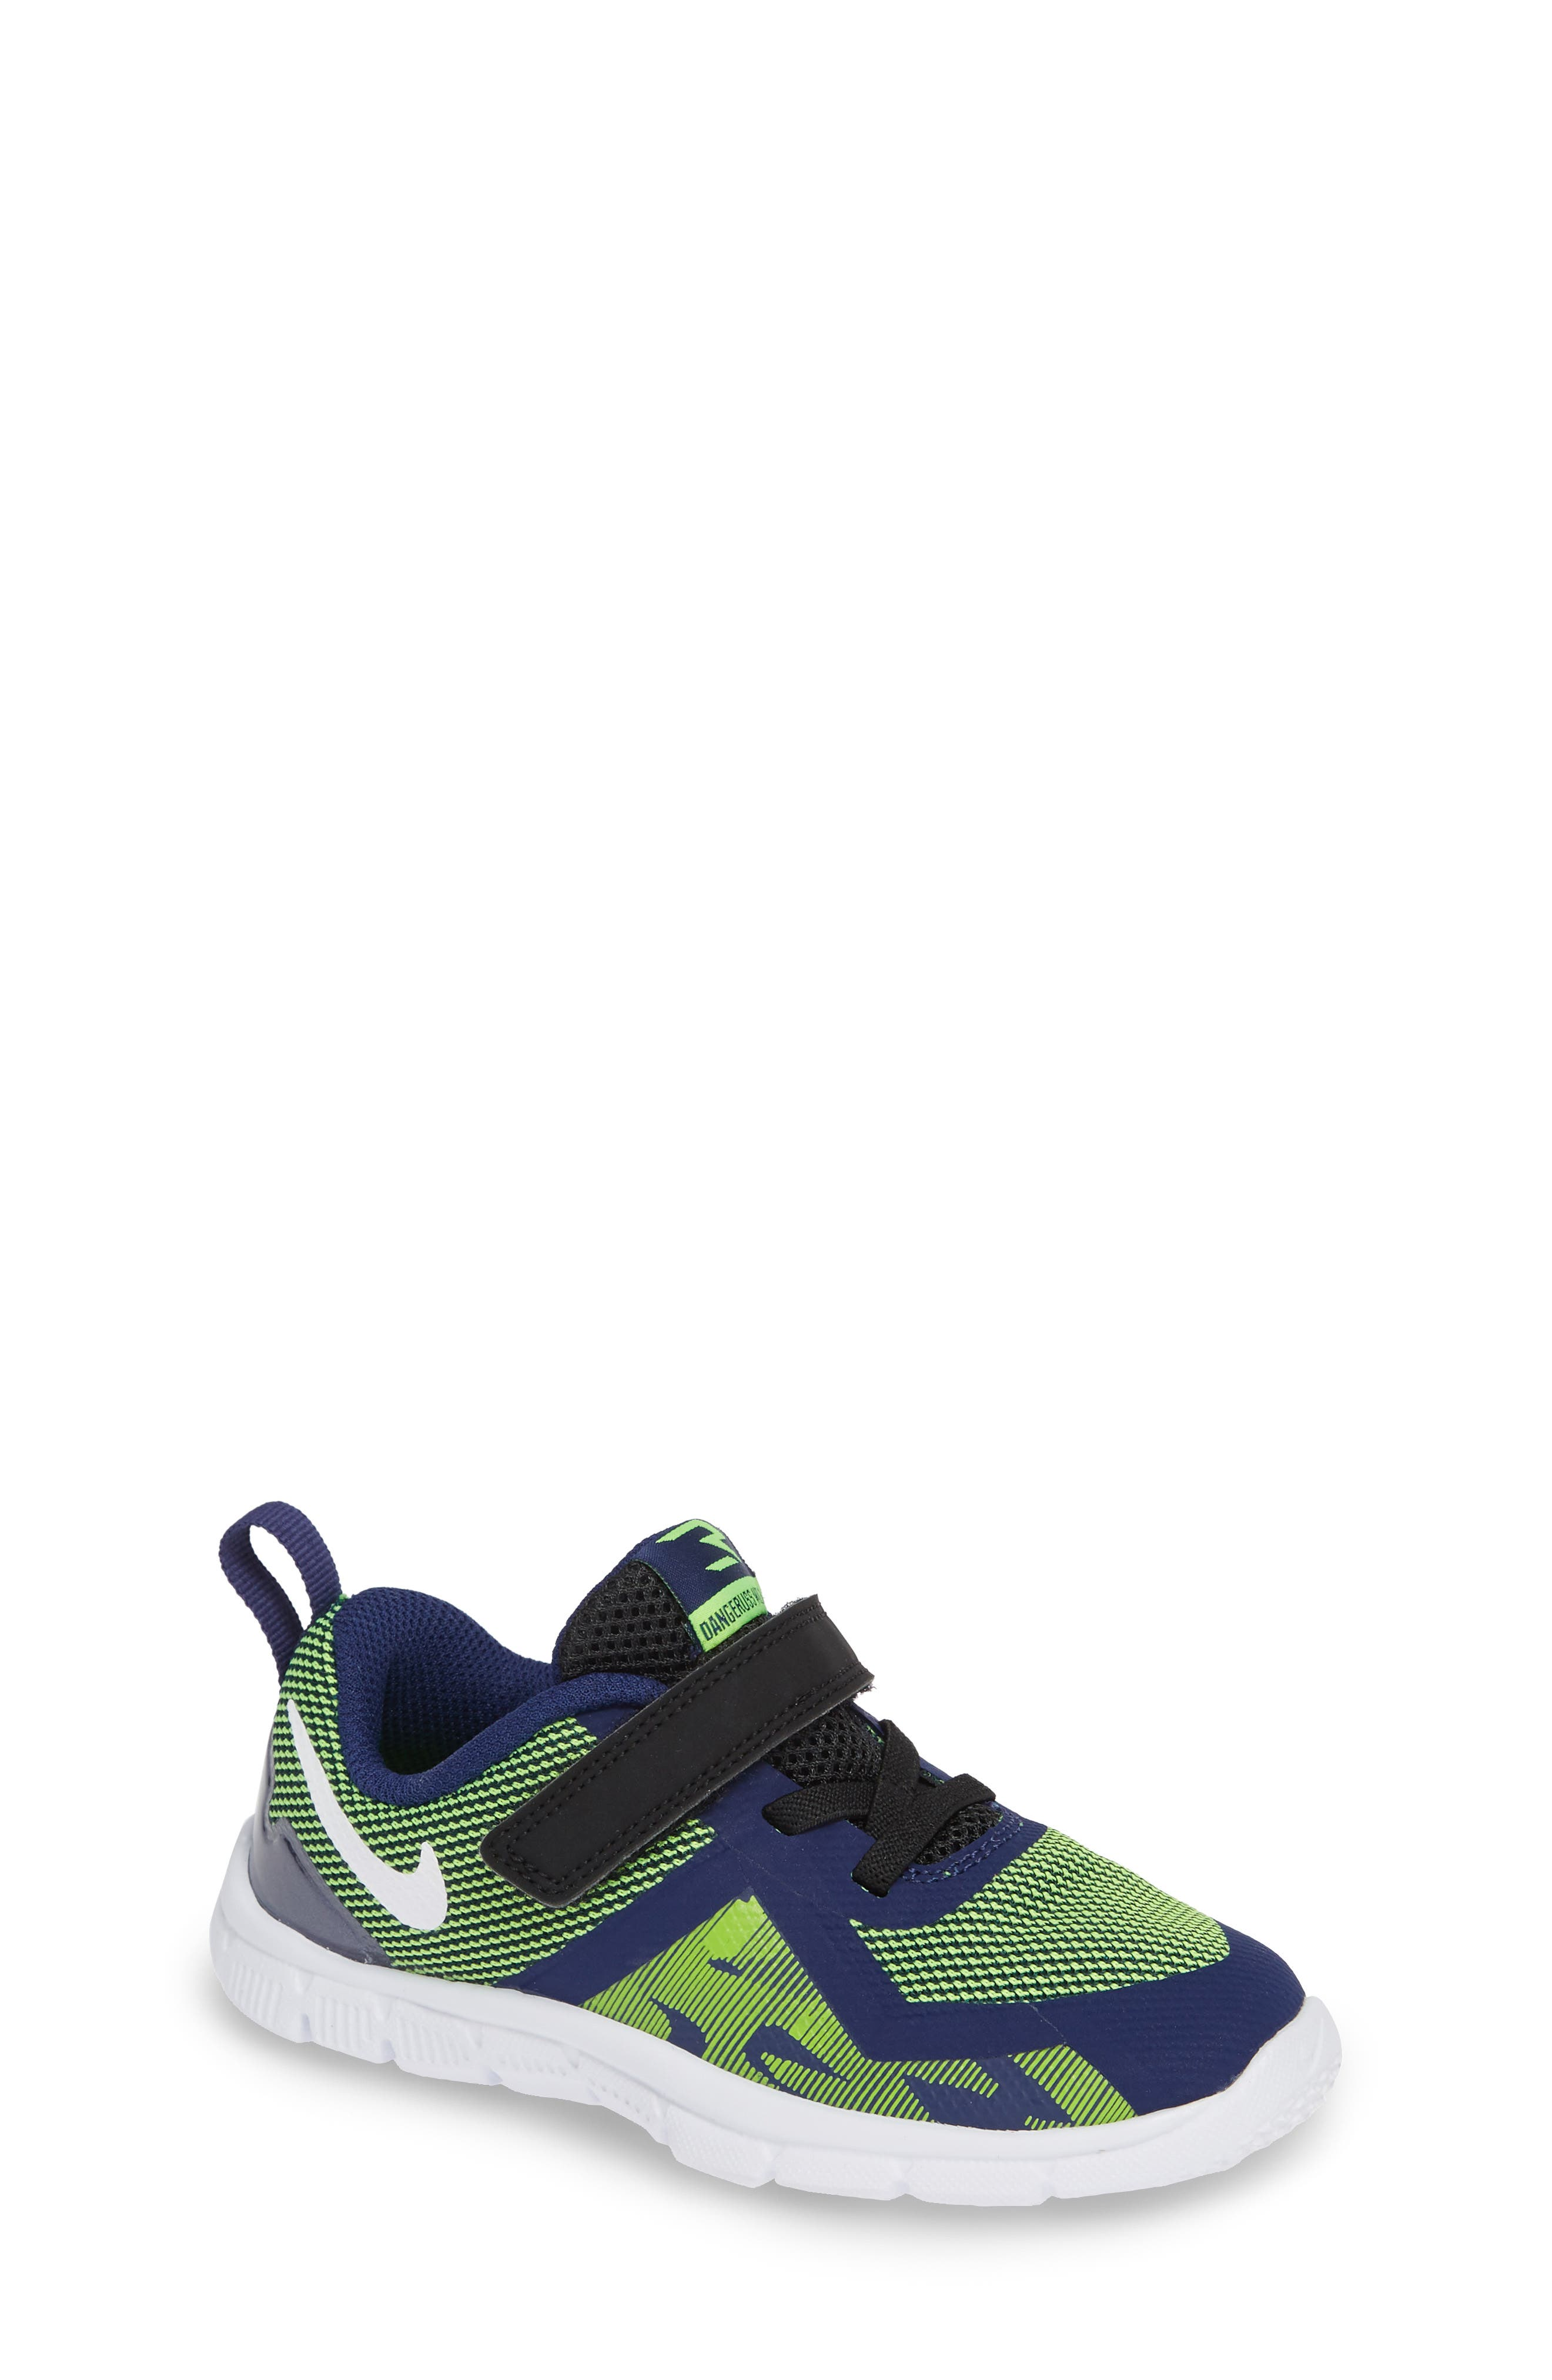 Flex Control II Training Shoe,                             Main thumbnail 1, color,                             BLUE/ WHITE/ ELECTRIC GREEN